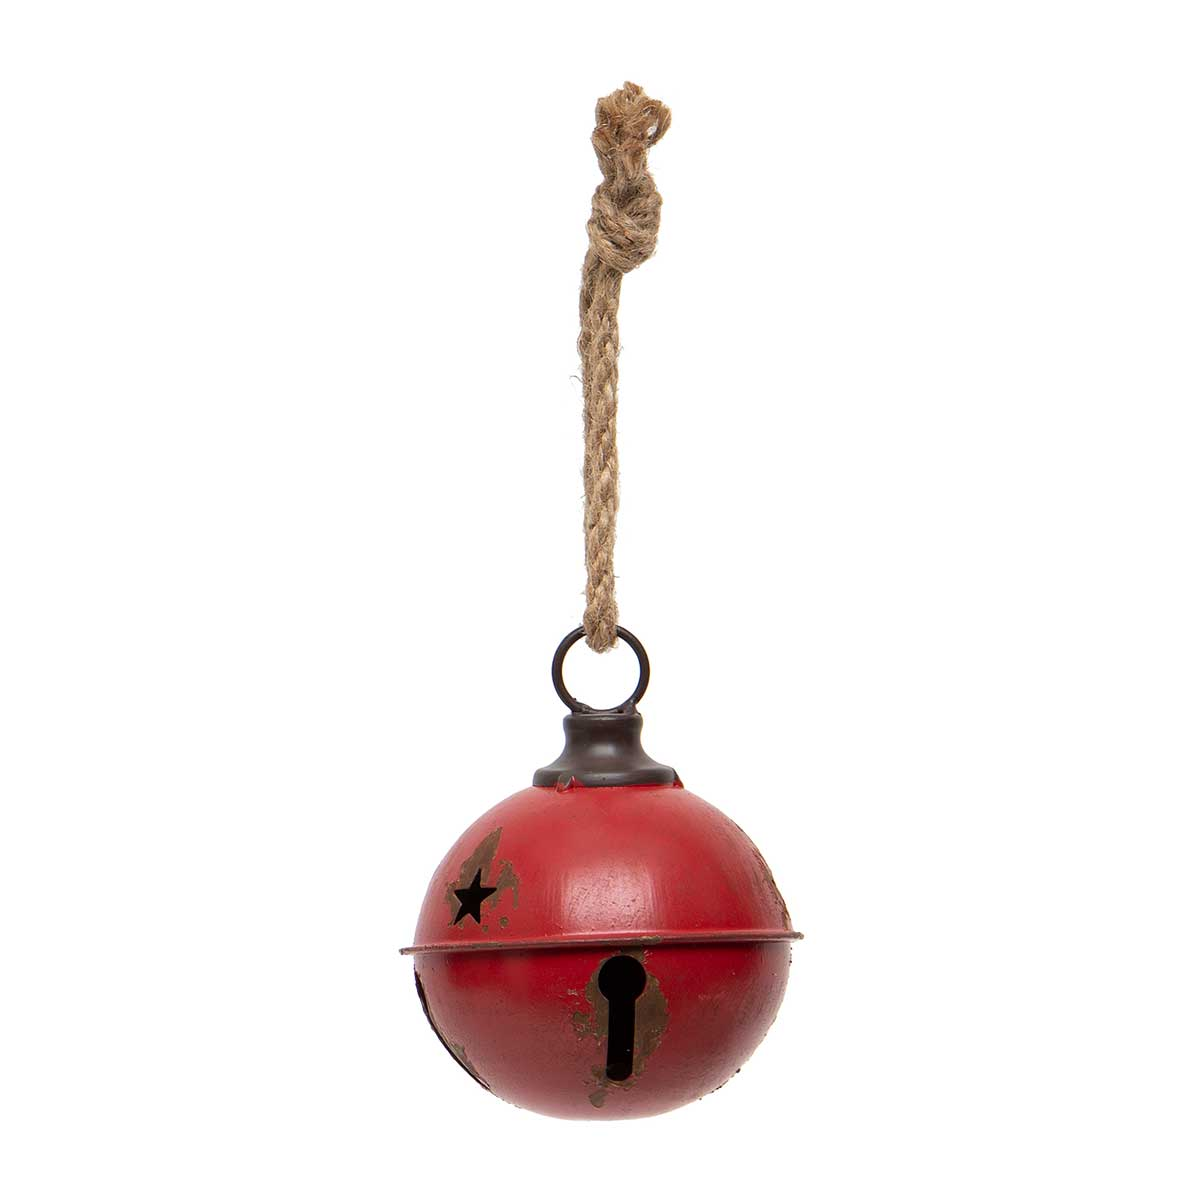 ANTIQUE RED METAL JINGLE BELL WITH STAR